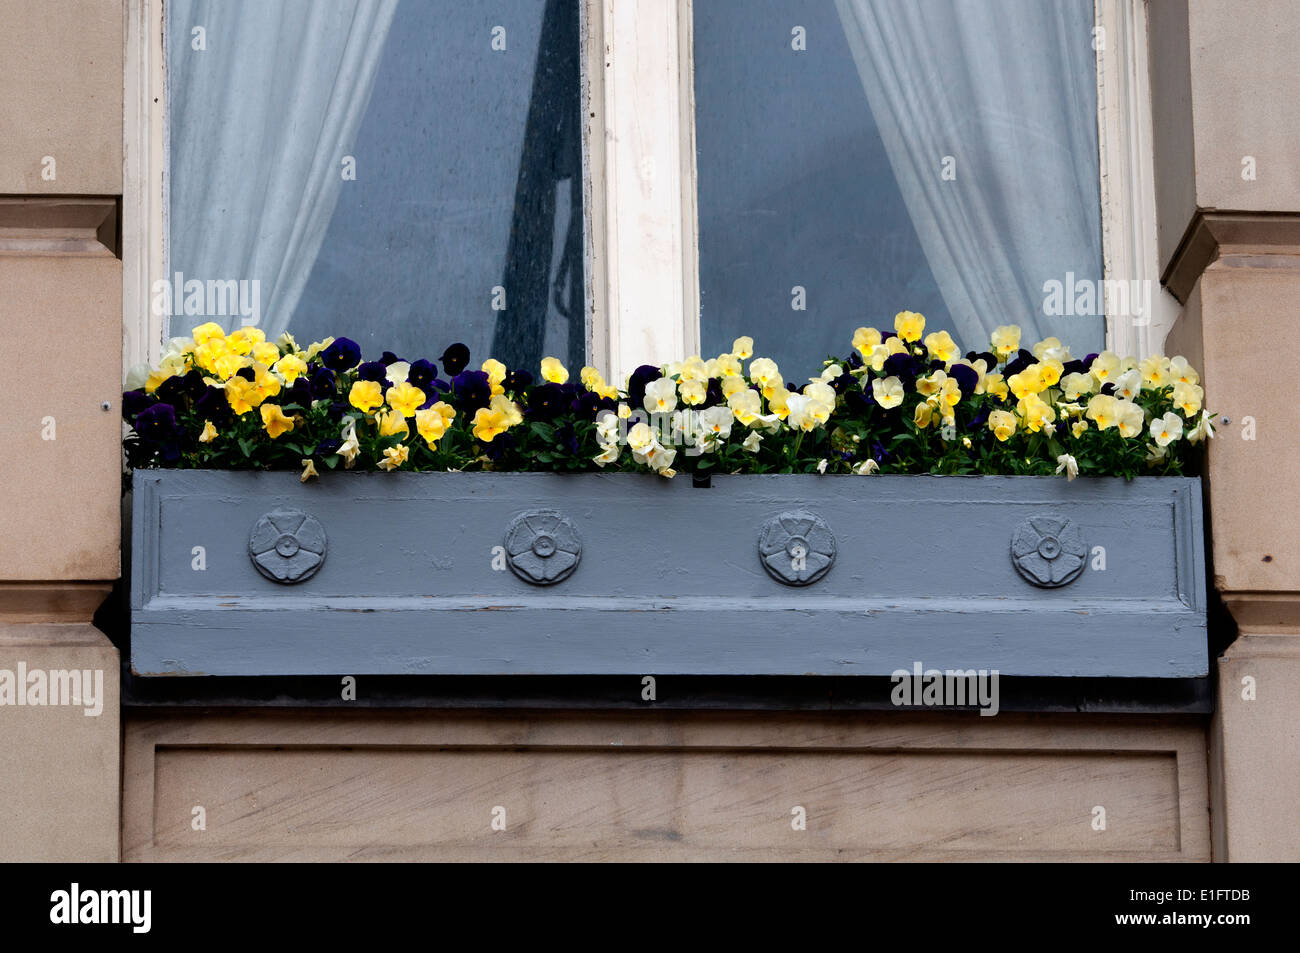 Window box with pansies, the Council House, Birmingham, UK - Stock Image